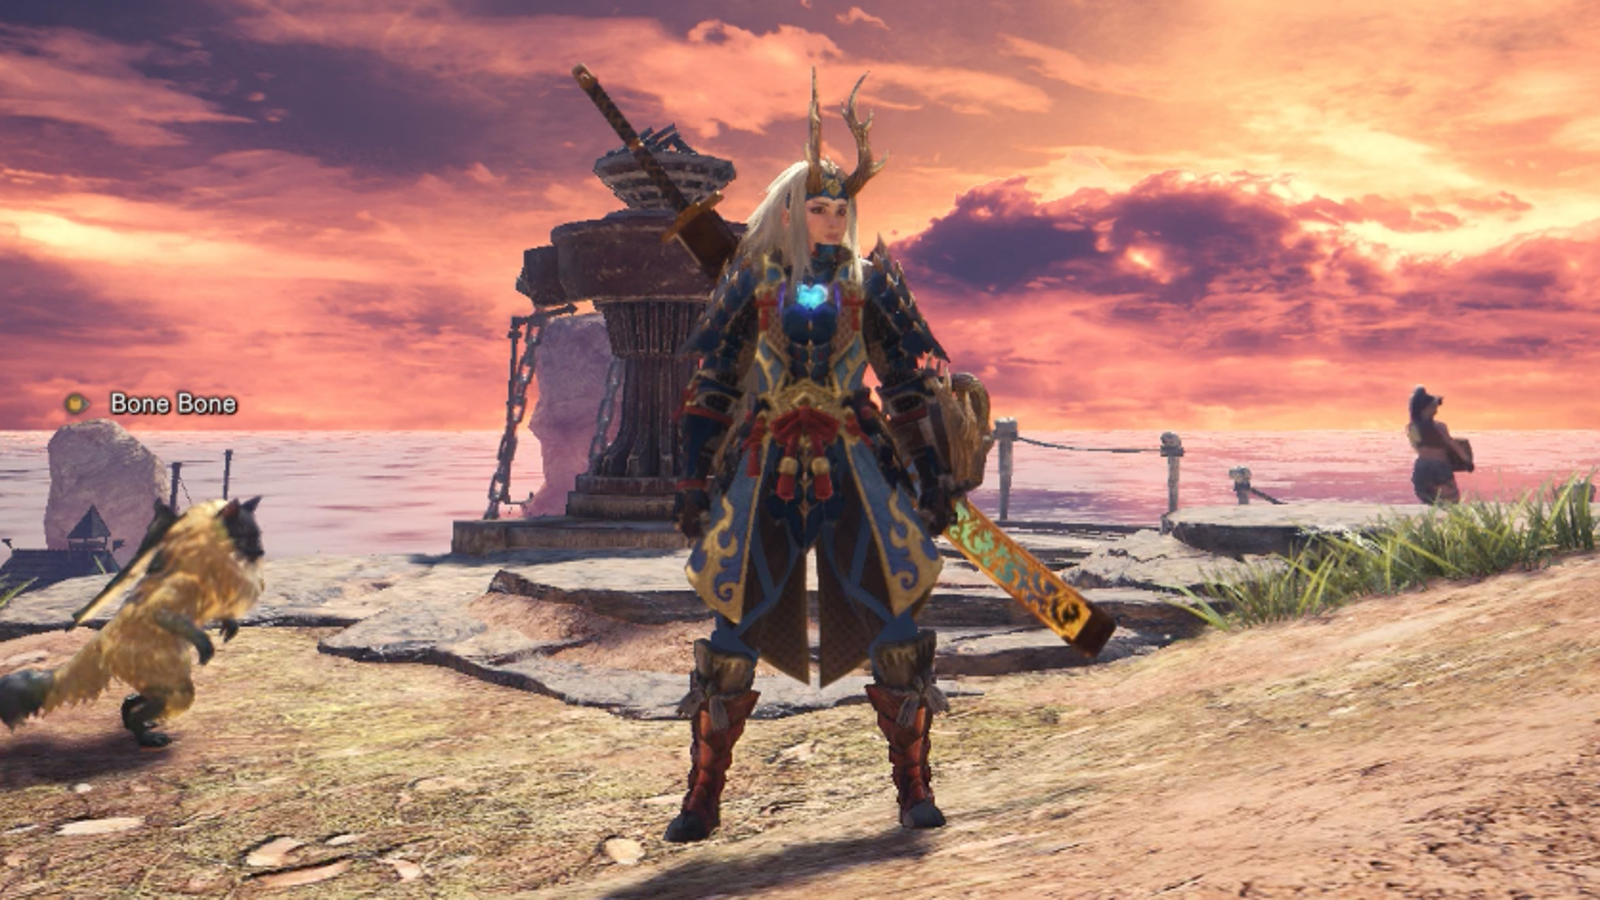 How To Get Monster Hunter: World's Rarest, Japan-Only, Armor